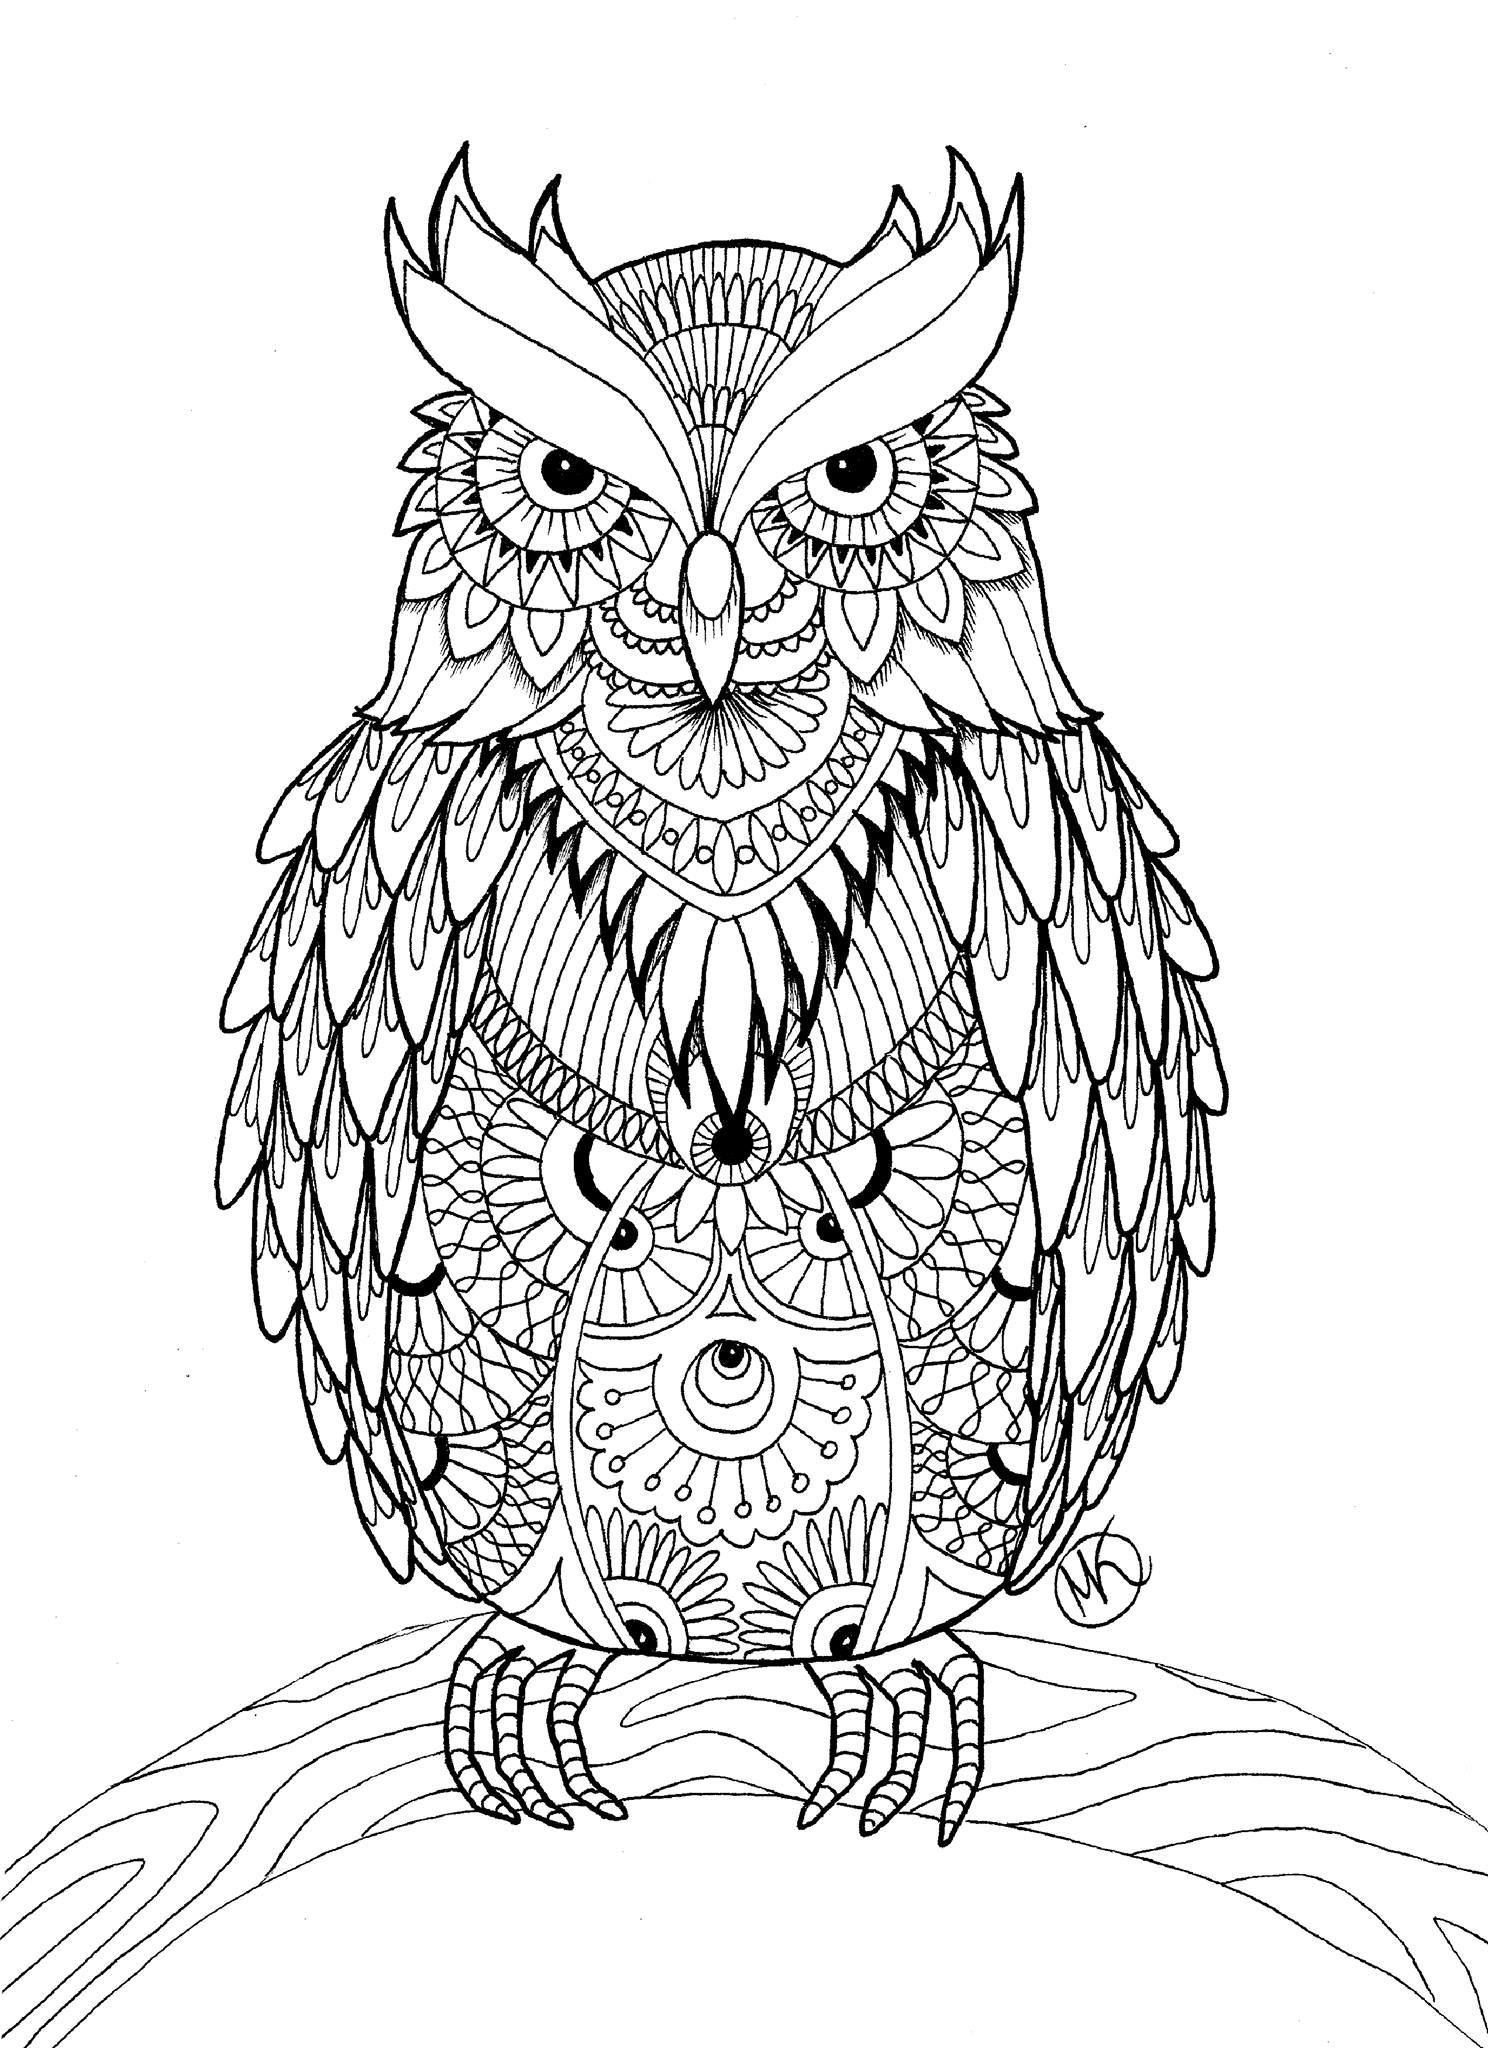 coloring book owl pictures owl coloring pages for adults free detailed owl coloring pictures coloring owl book